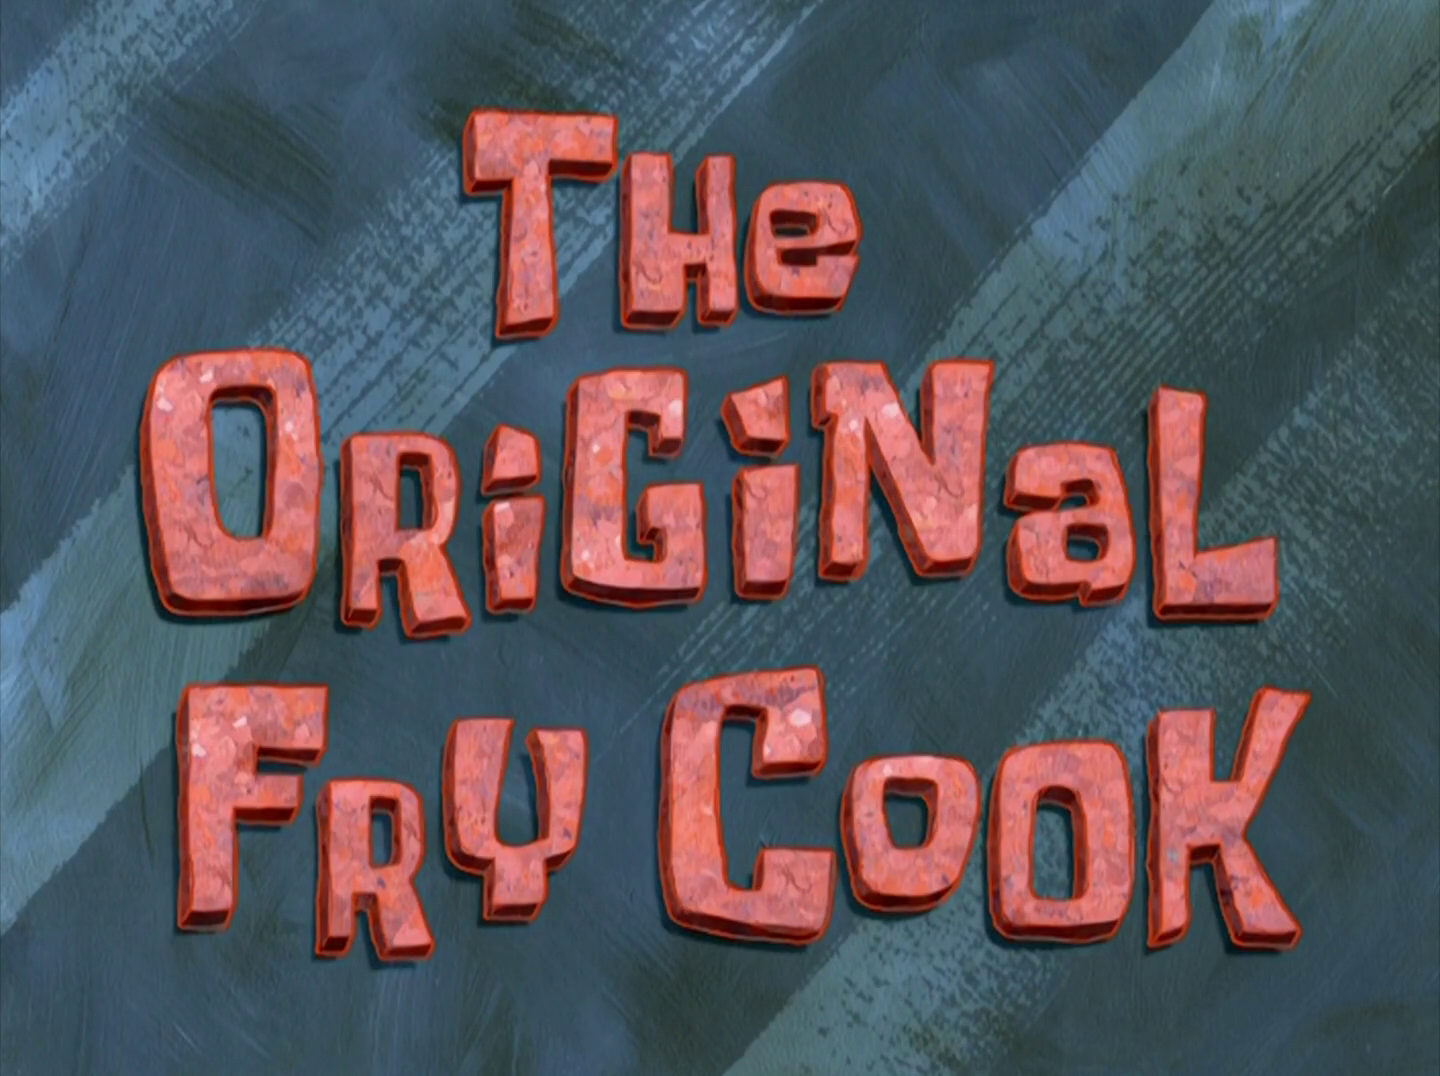 The Original Fry Cook/transcript